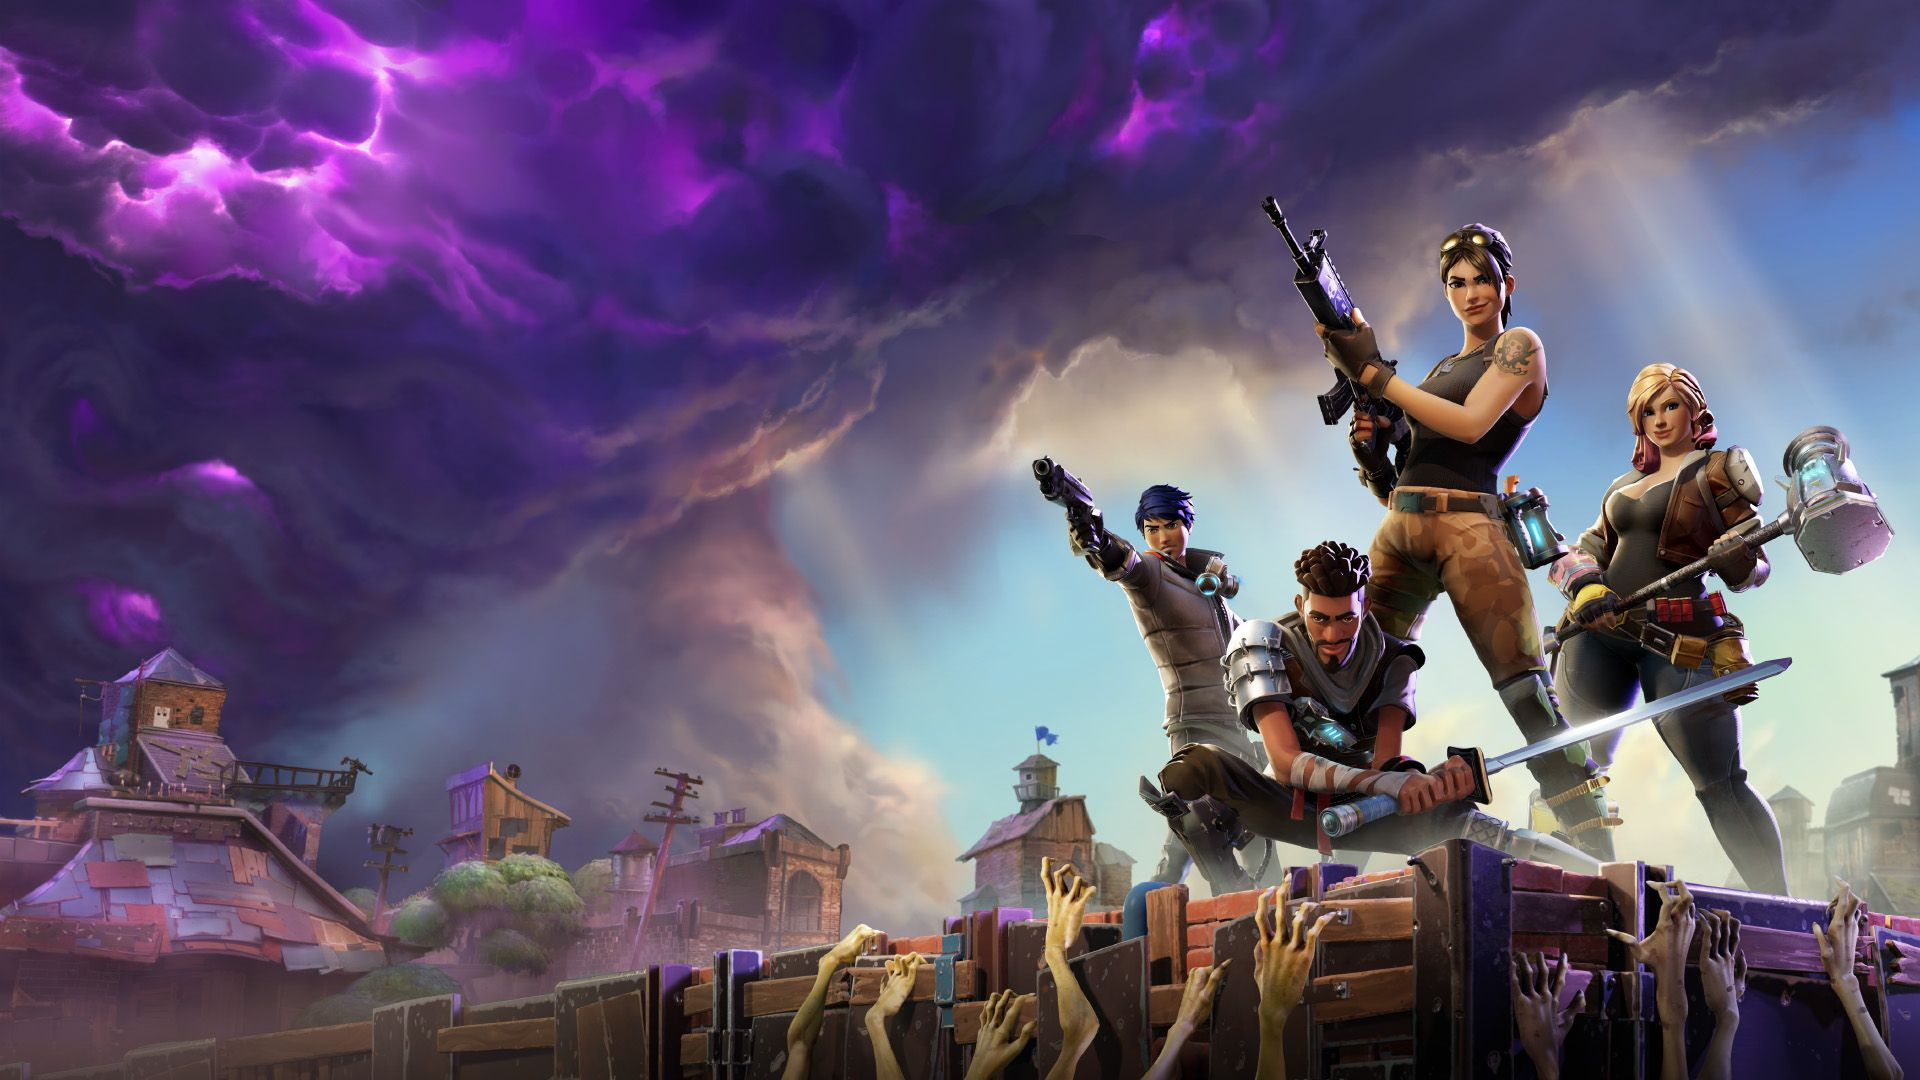 Fortnite 1080P Wallpapers   Top Fortnite 1080P Backgrounds 1920x1080